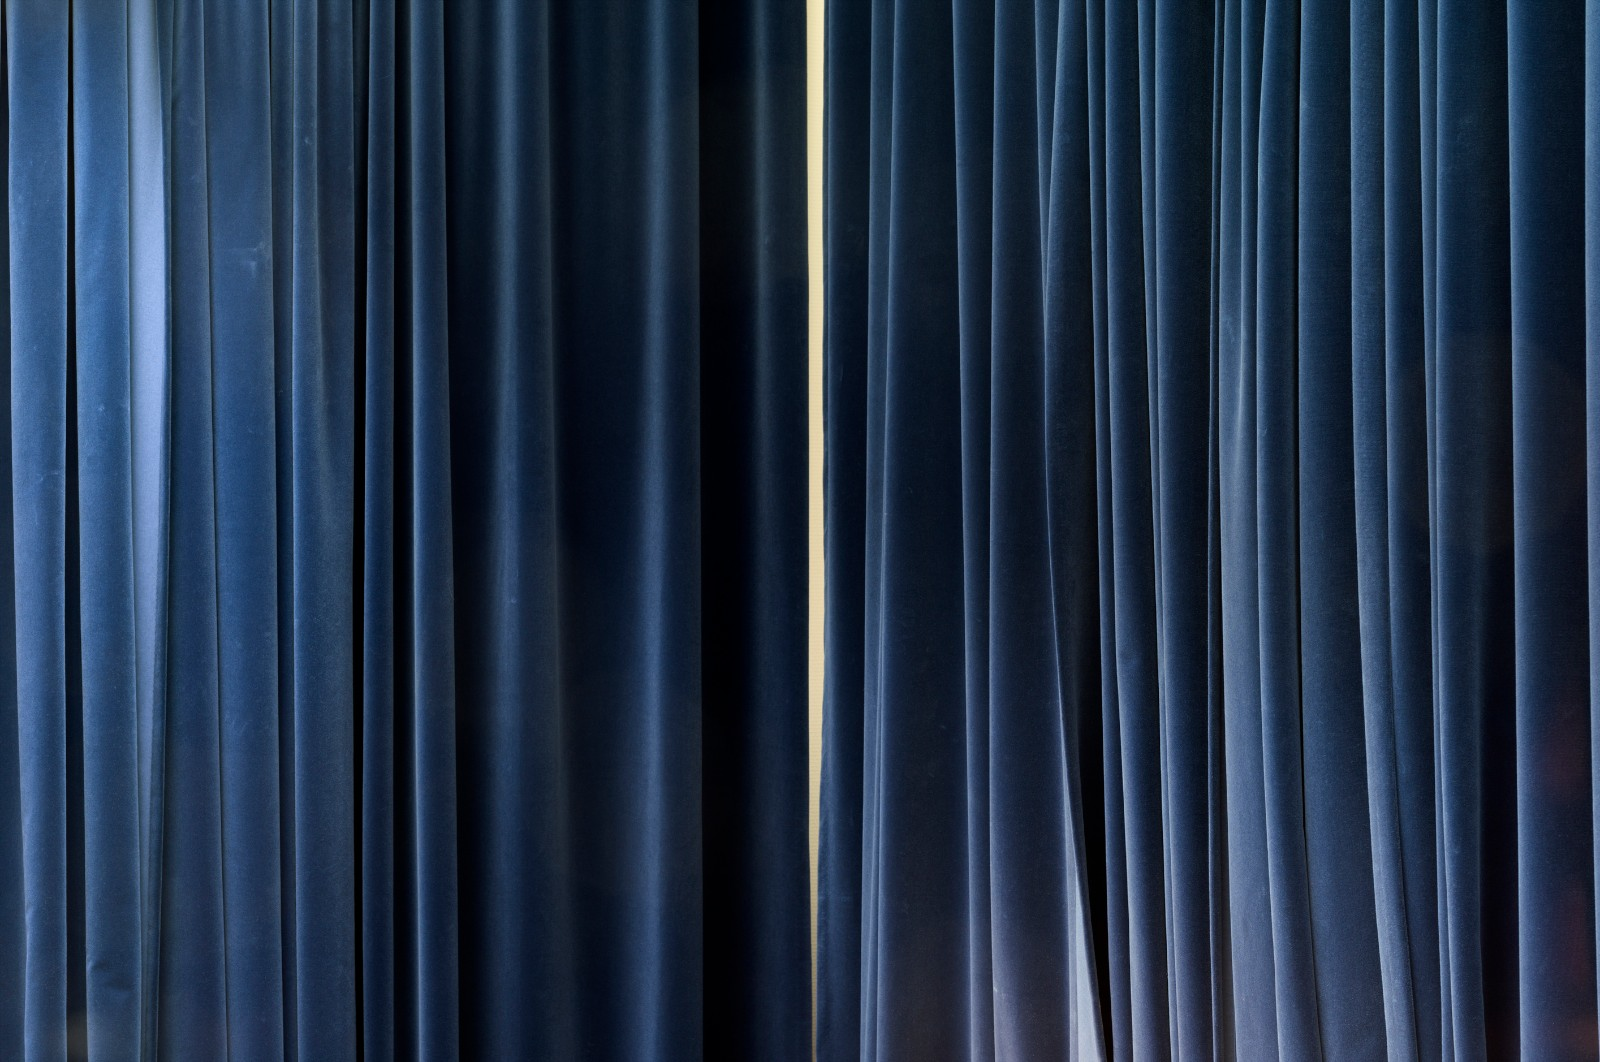 curtains revealing a wall, interior view American Embassy Oslo, 2014, giclée print mounted on aluminum, 150 x 225 cm, ed. 5